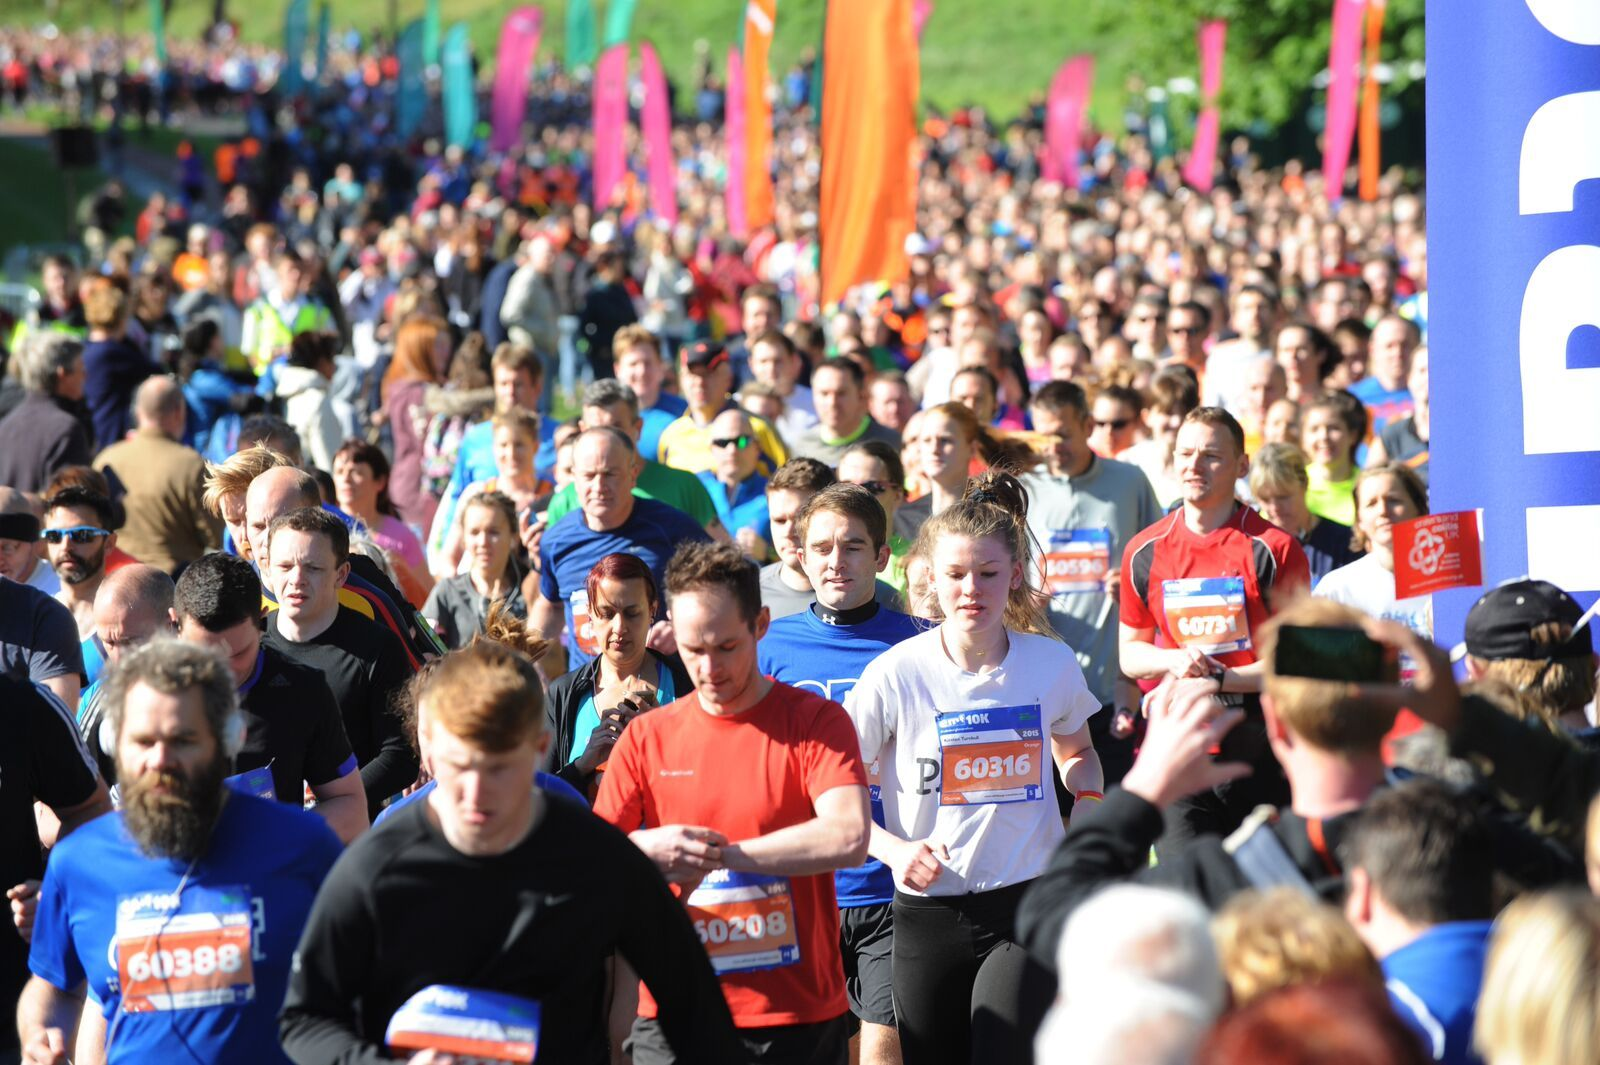 Runners taking place in the Edinburgh Marathon Festival